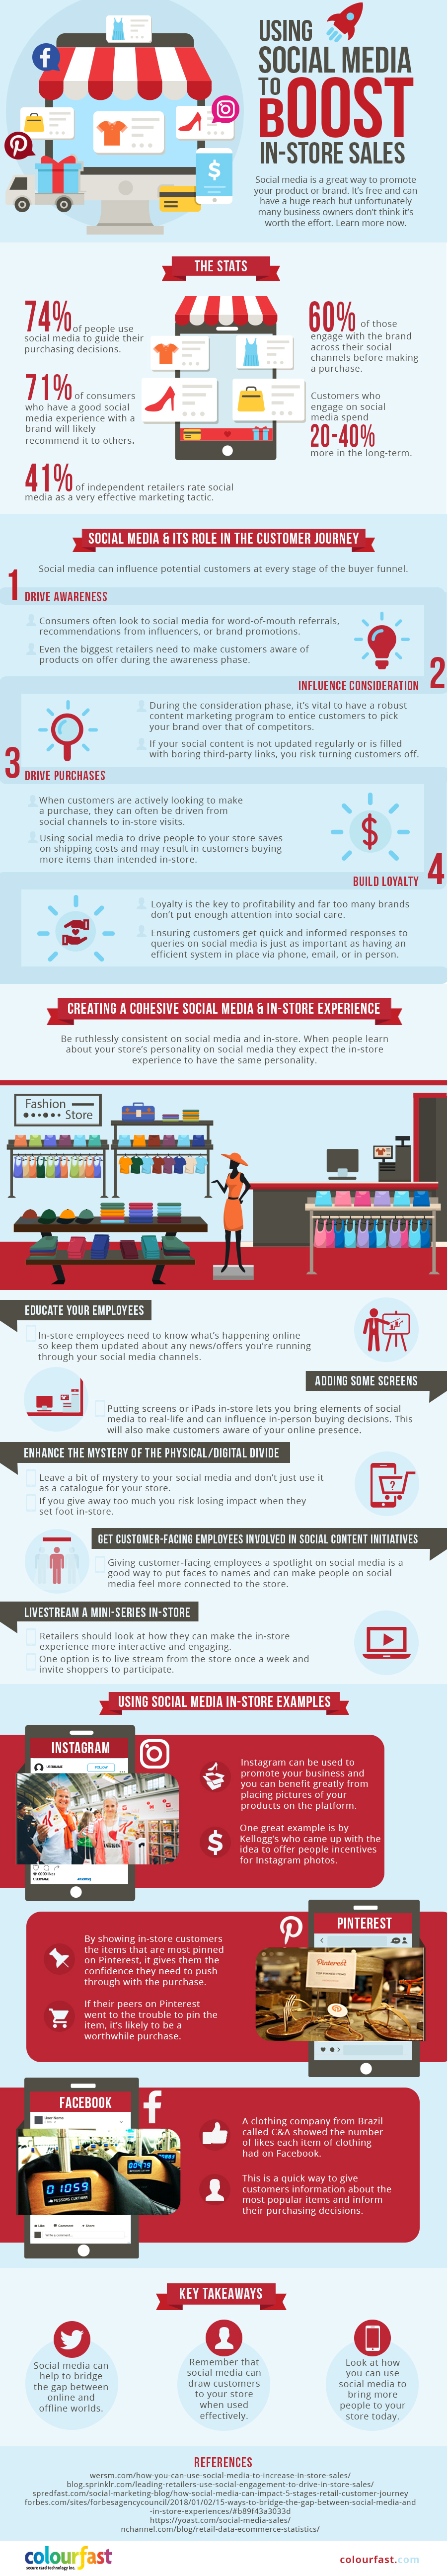 Using Social Media to Boost In-Store Shopping